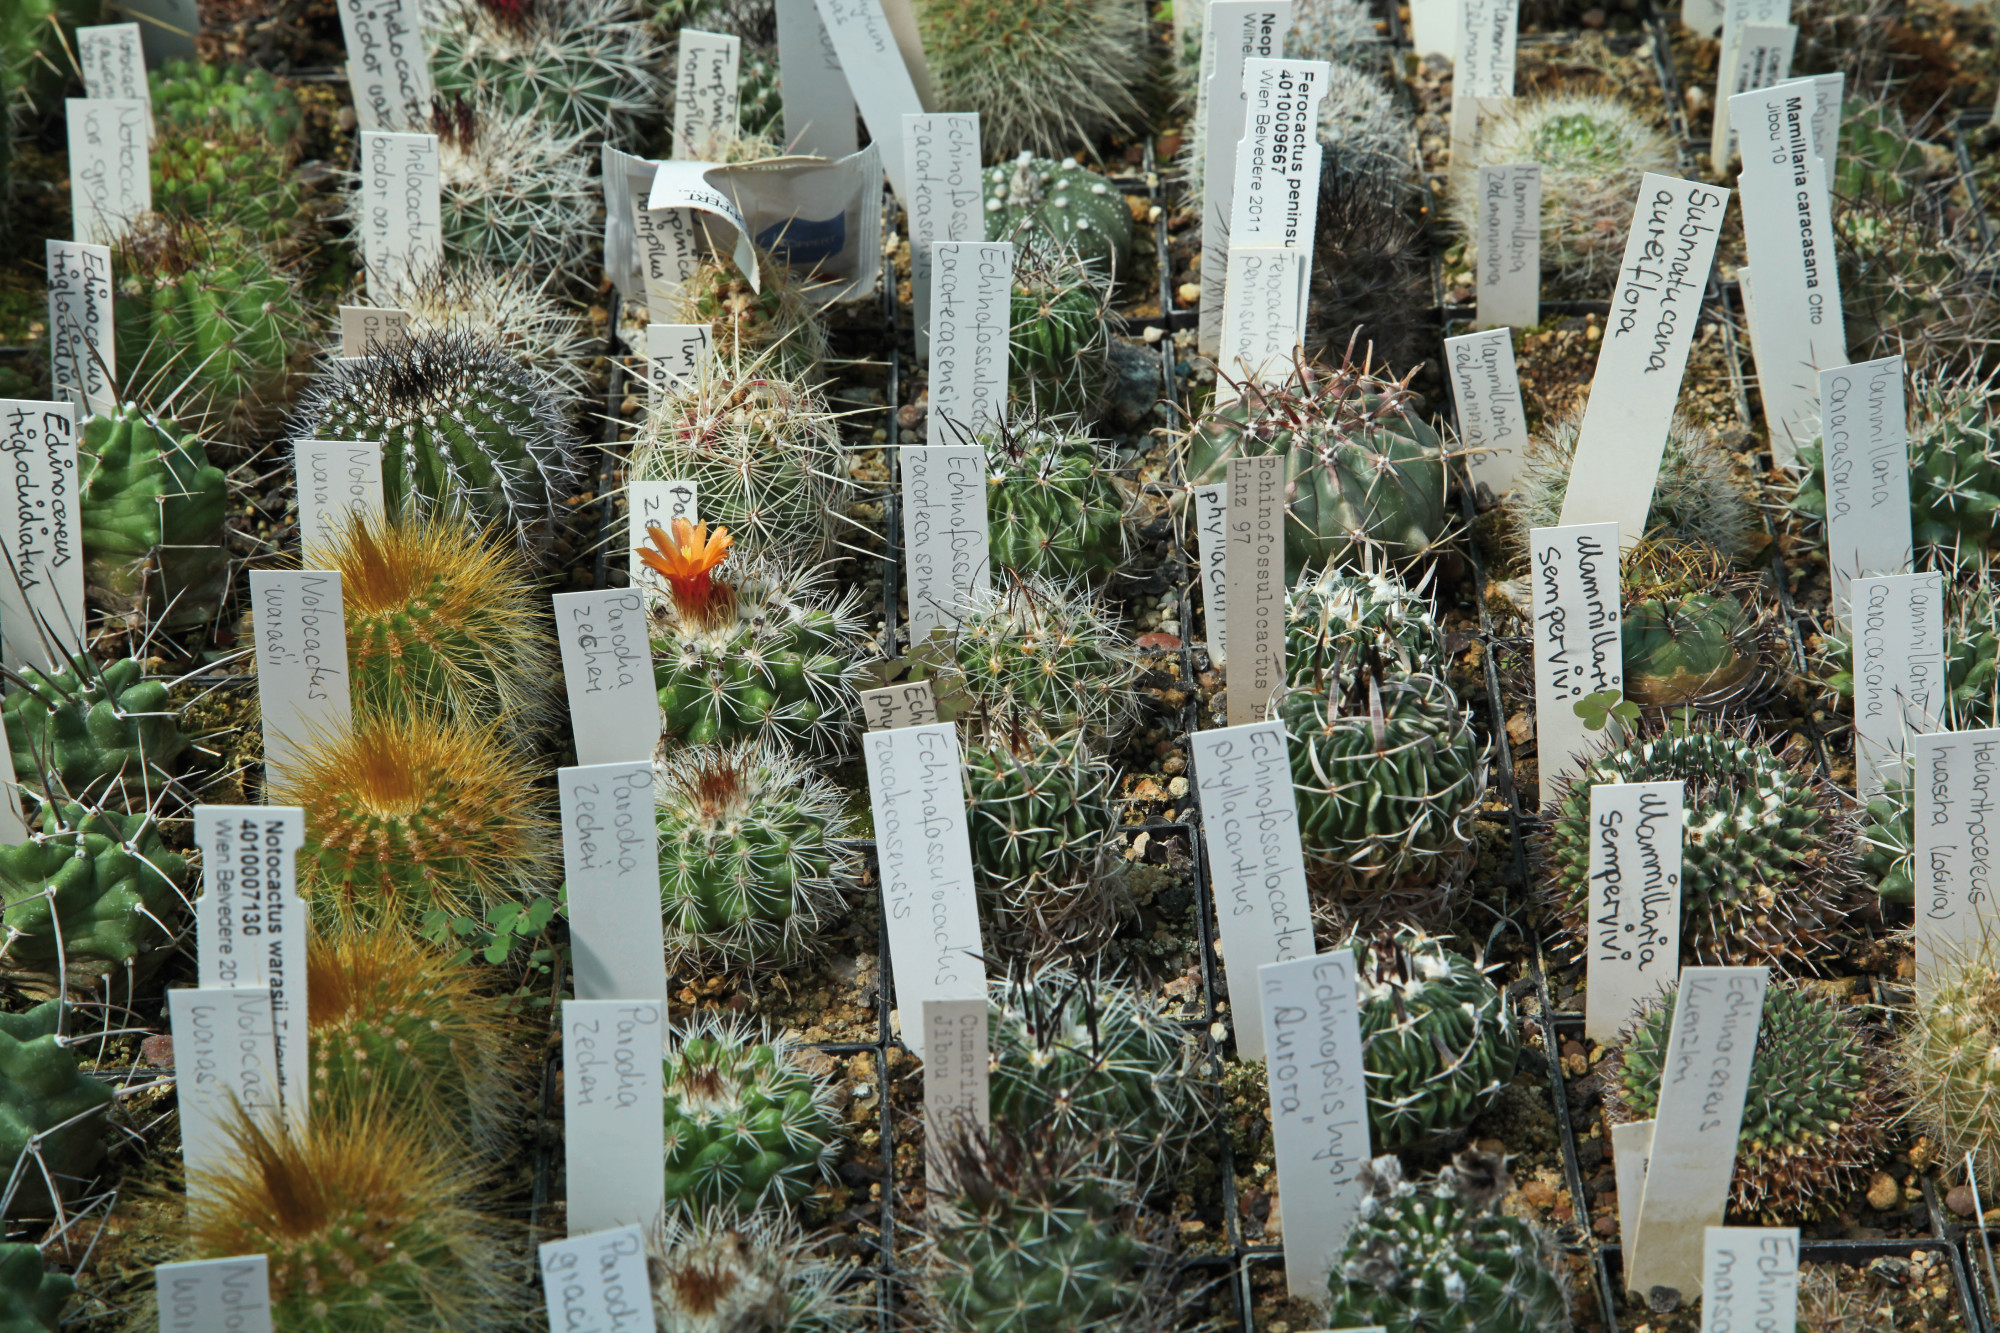 Cactus Collection In The Botanical Garden (image: Georg Pöhlein)